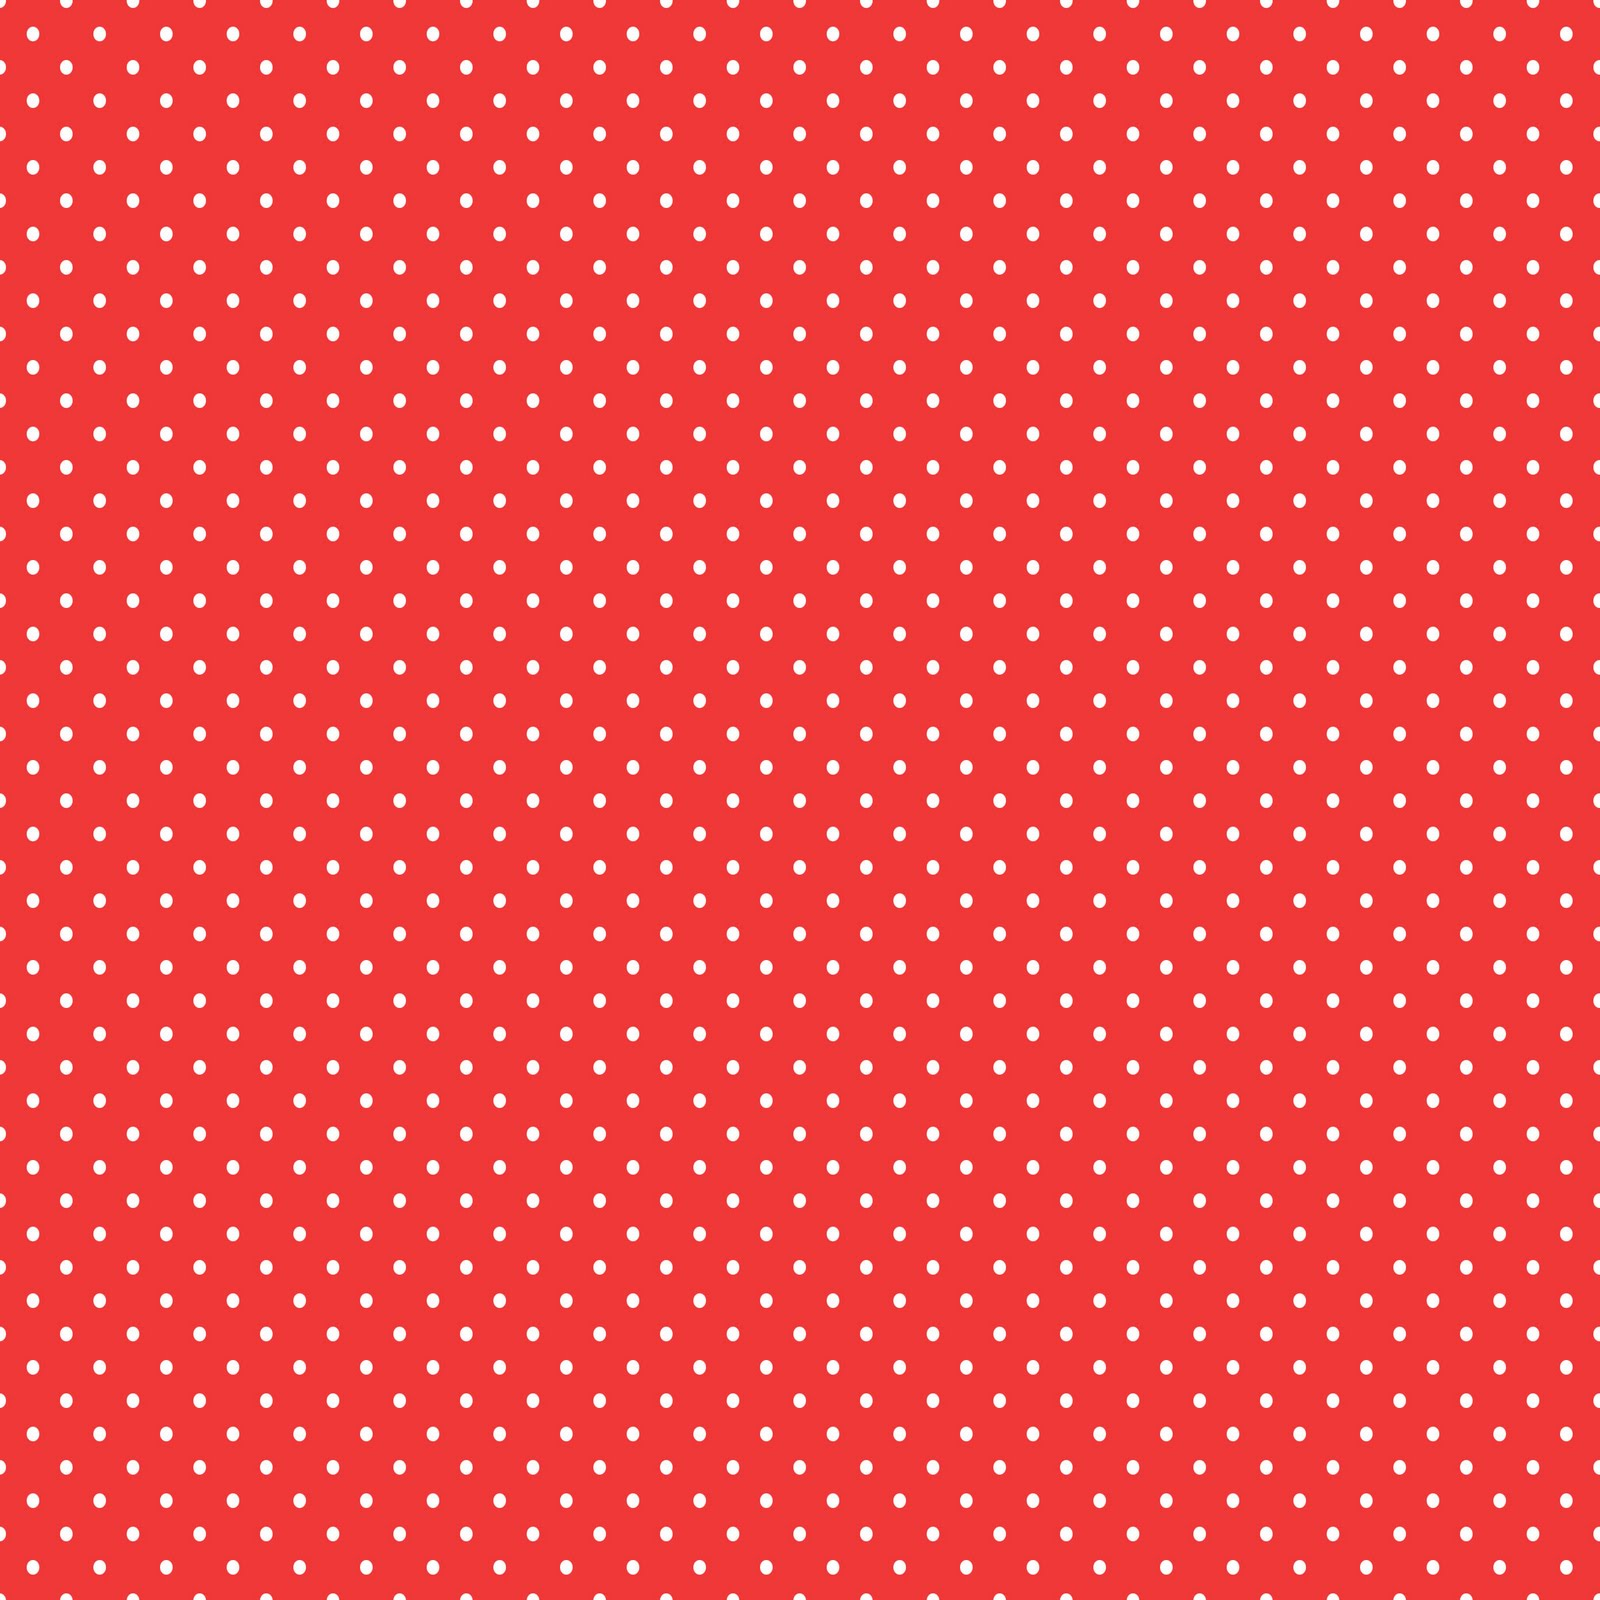 Free Digital Sbook Paper   Red Polka Dots